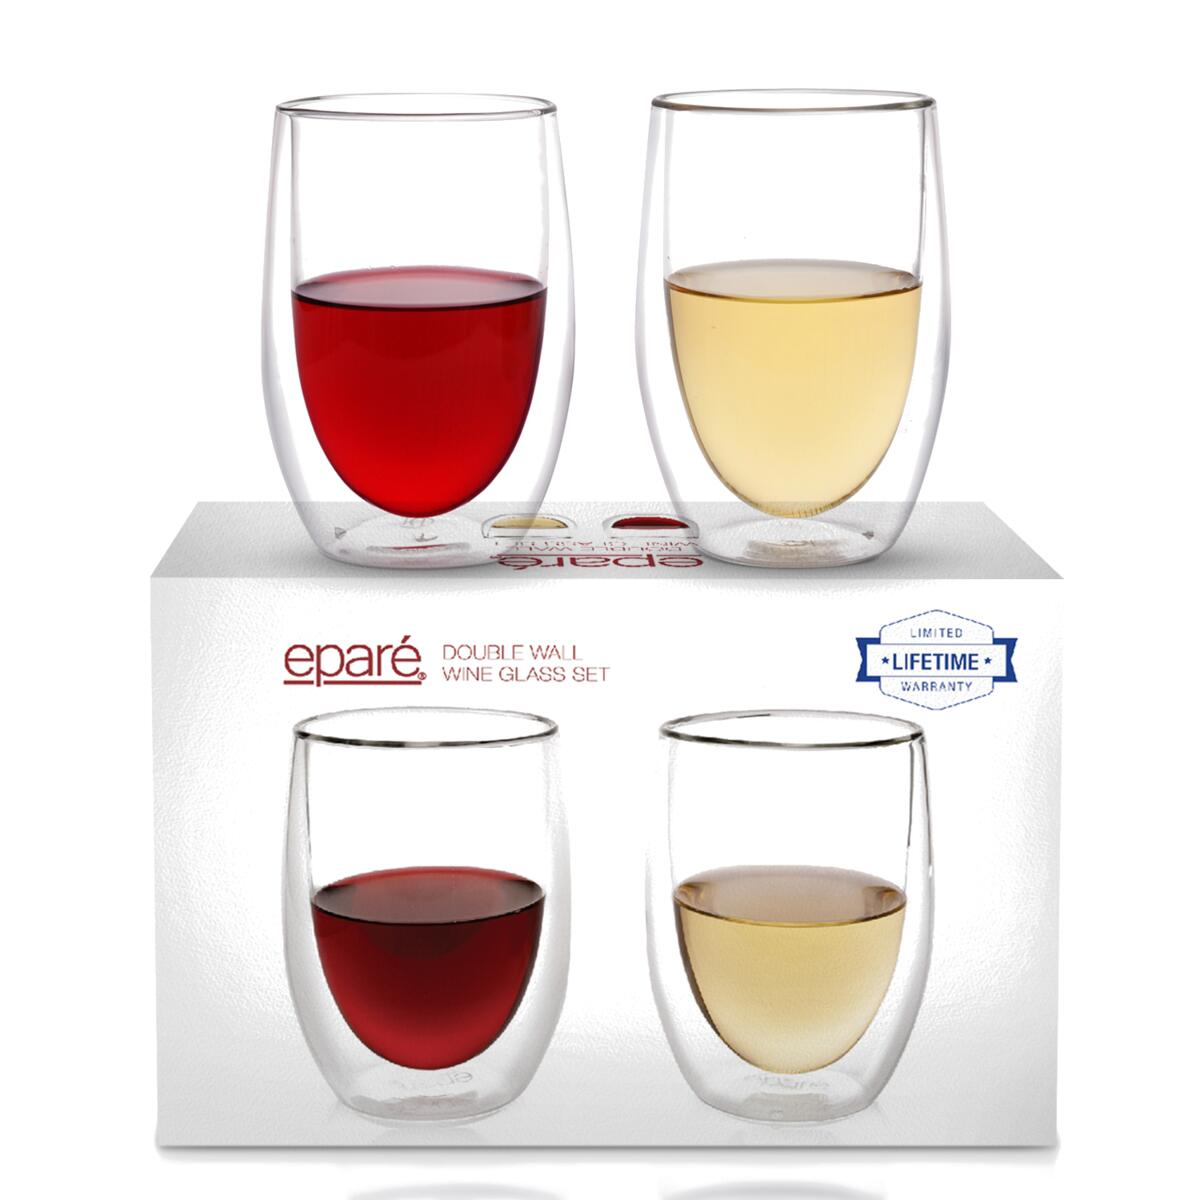 Eparé Double Wall Wine Glass (Set of 2), Set of 2